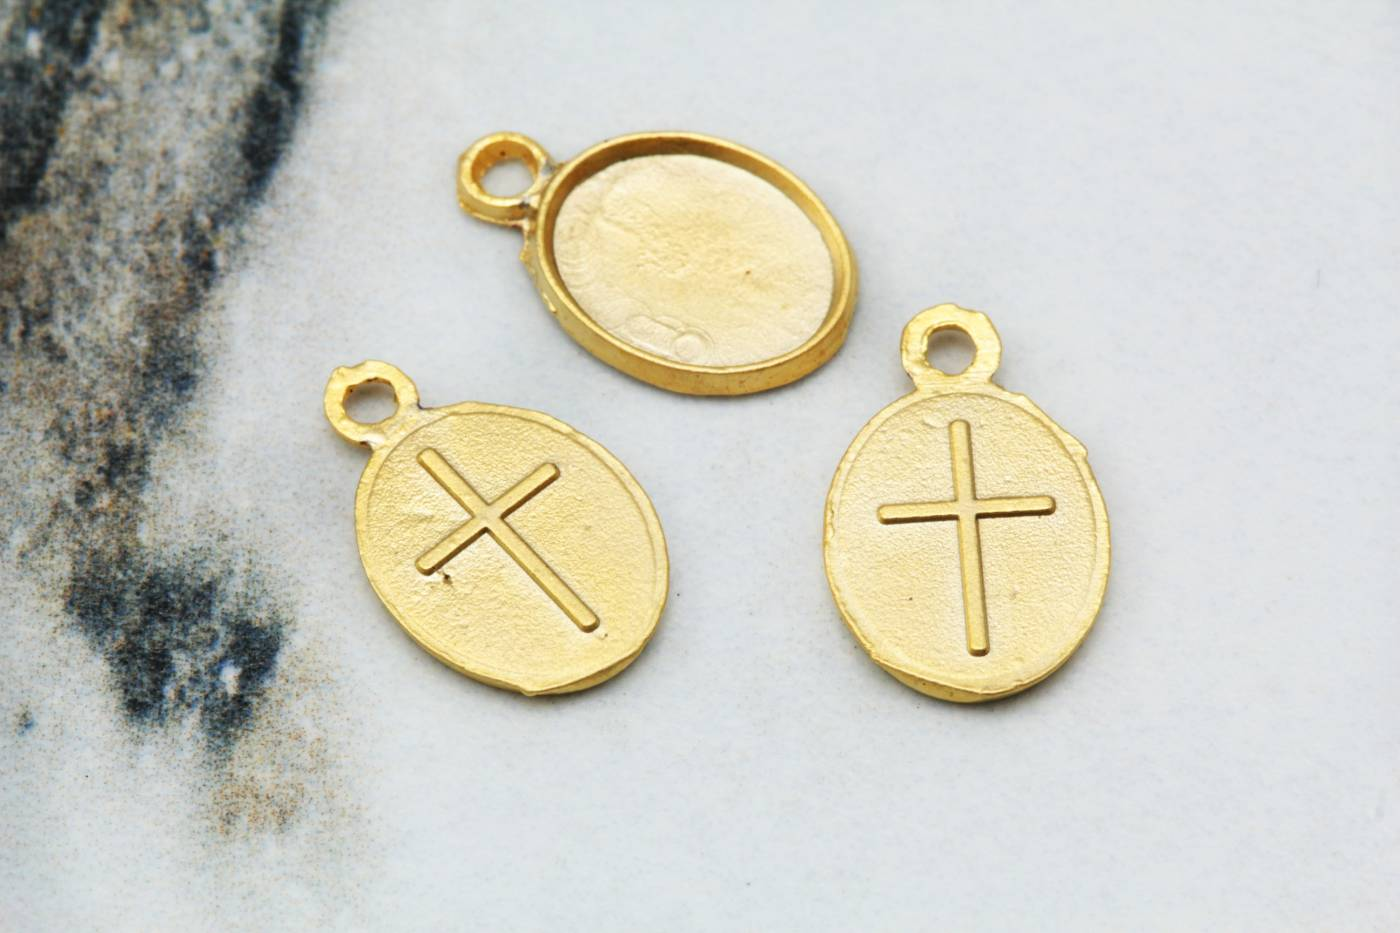 mini-cross-jewelry-pendant.jpg